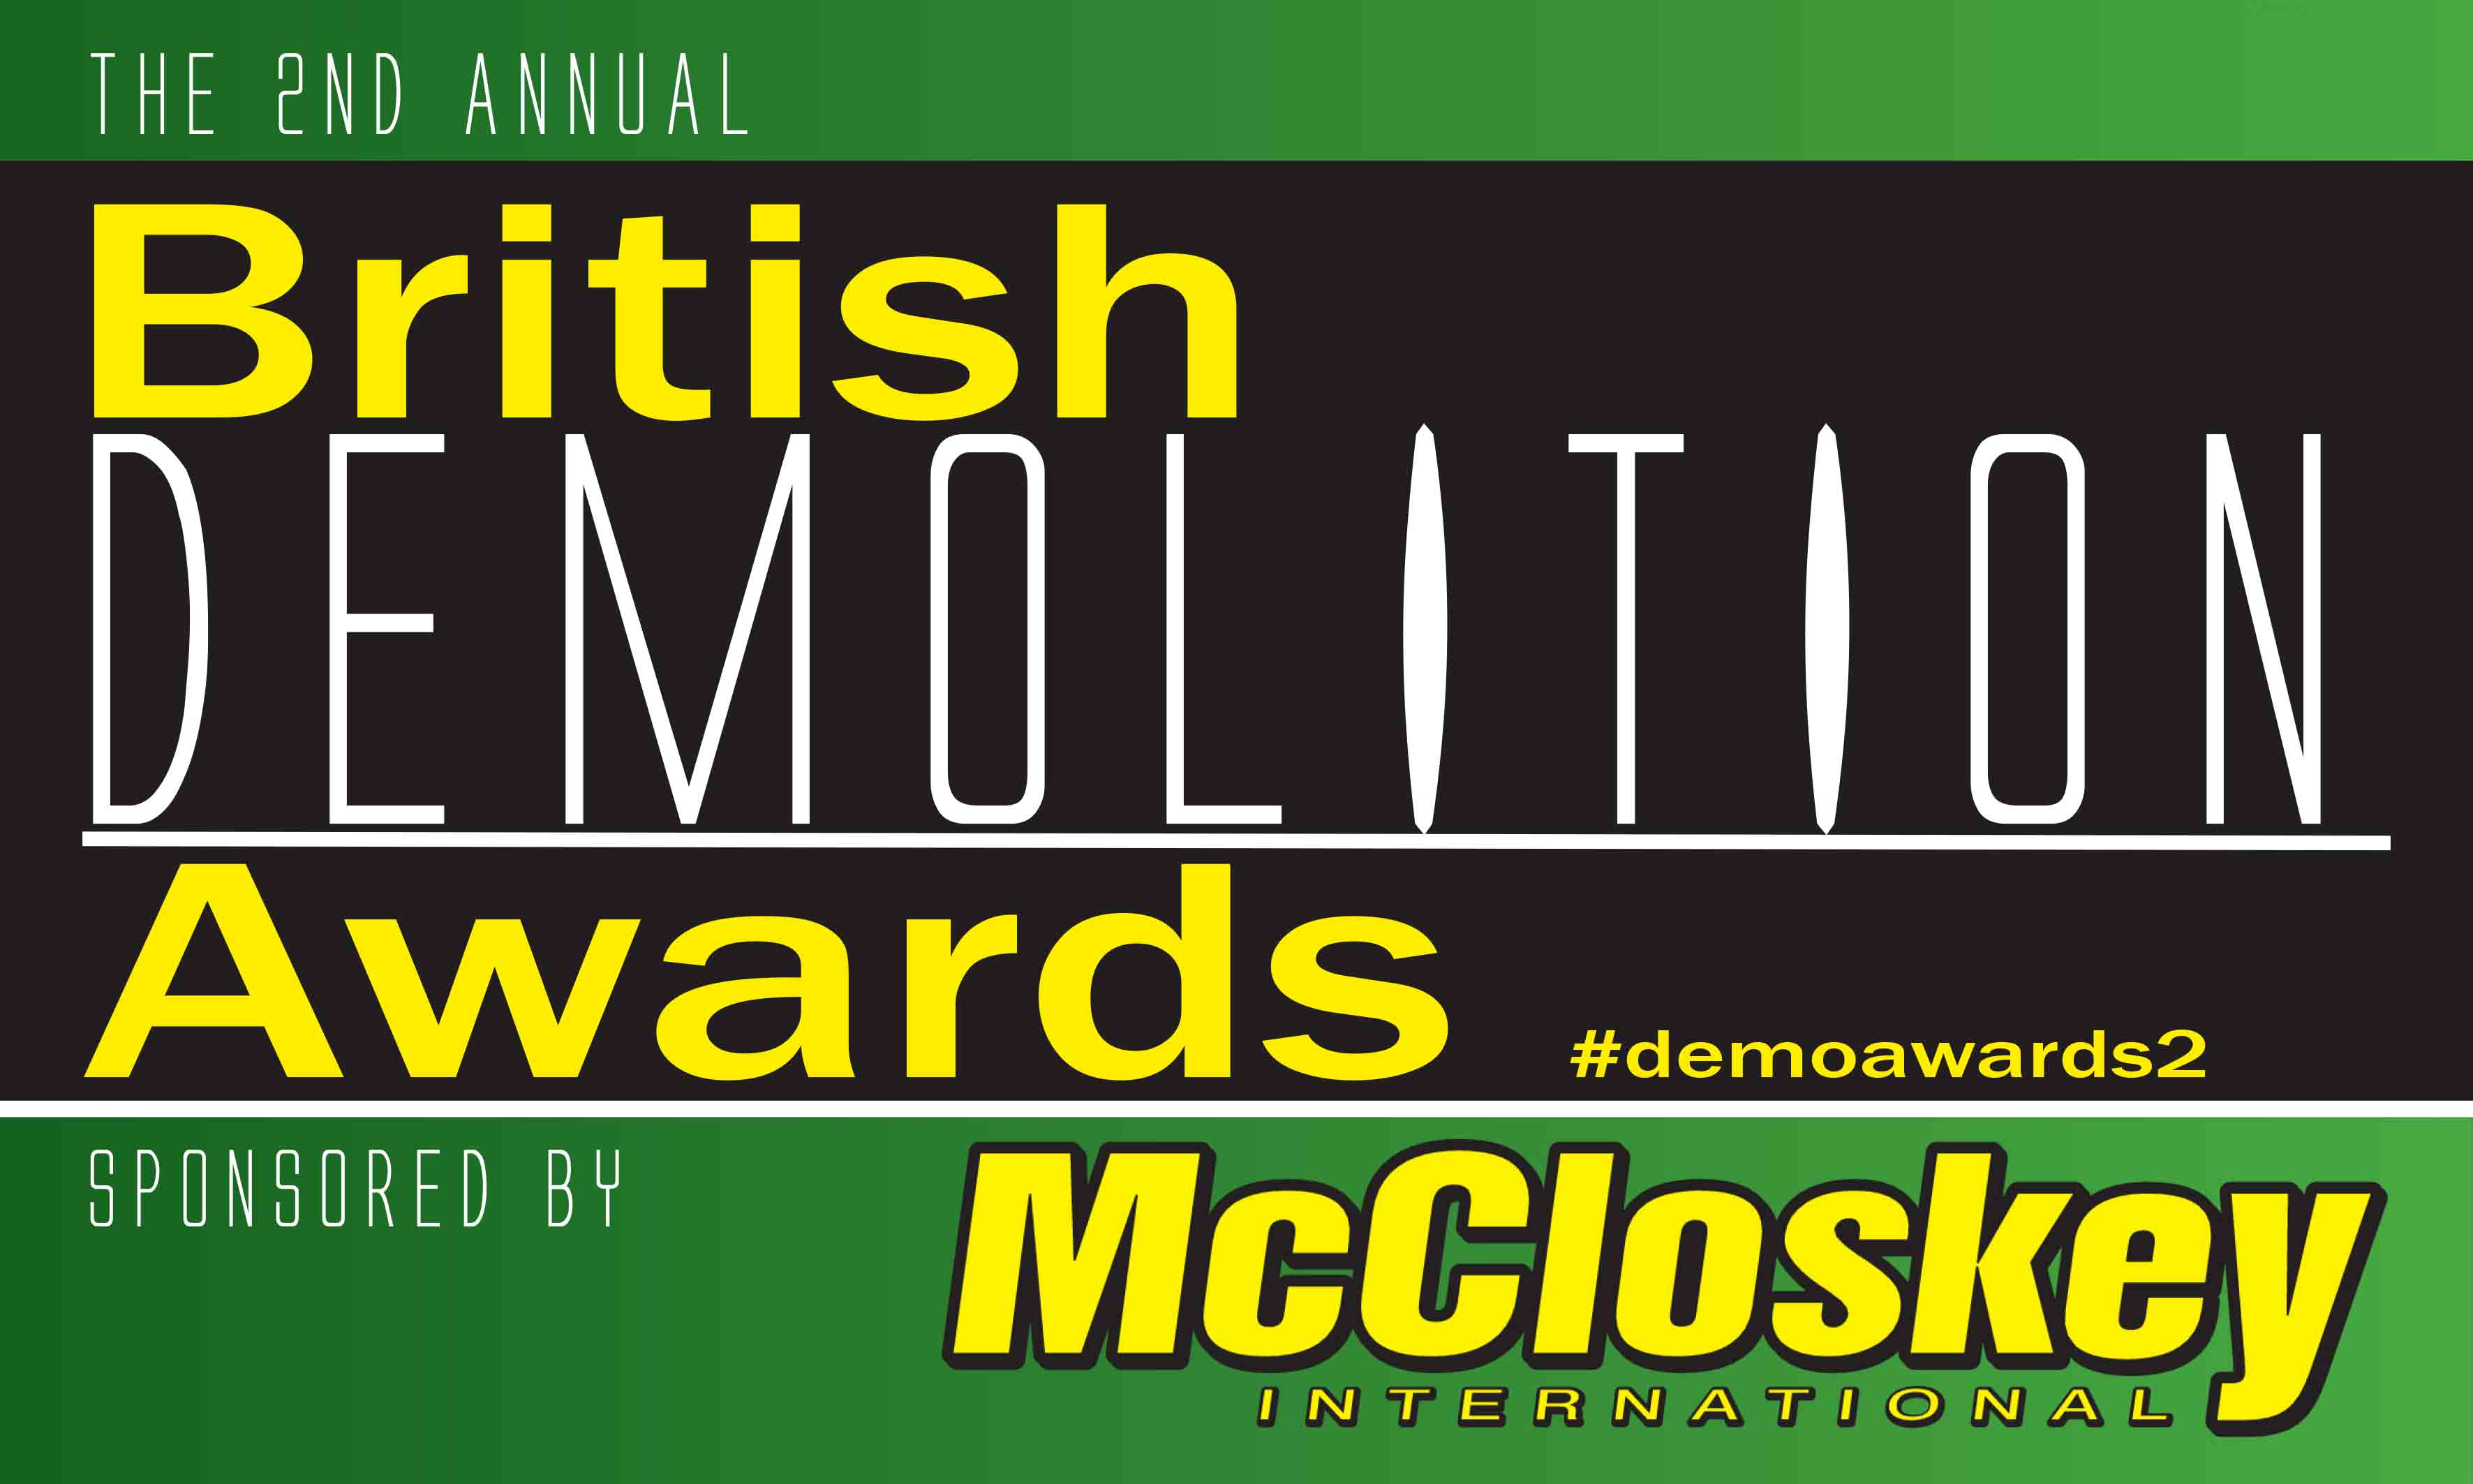 McCloskey International named as principal sponsor for the 2nd annual British Demolition Awards